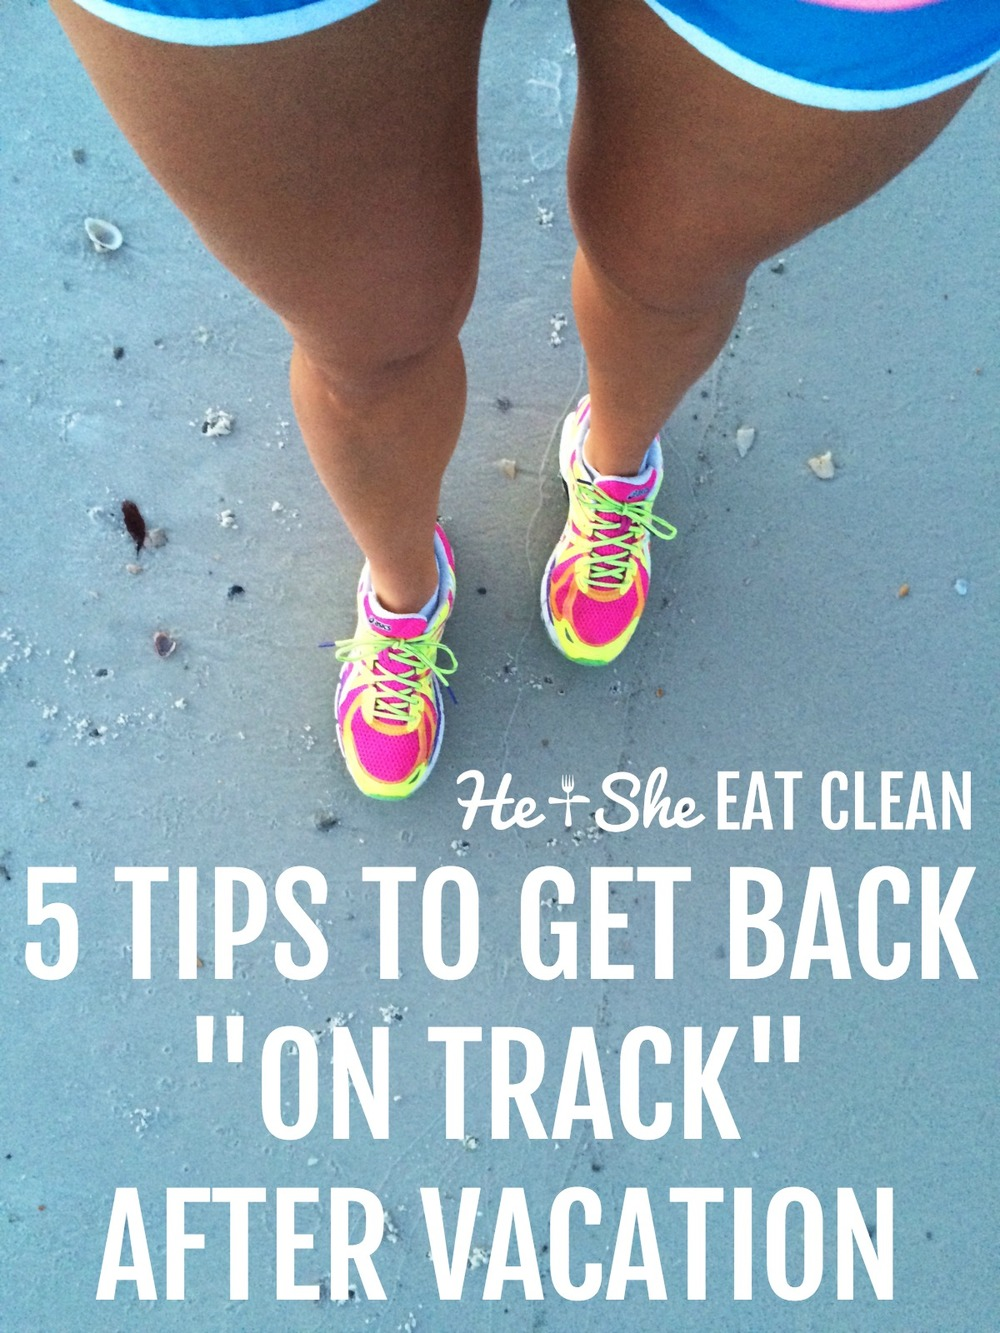 5 Tips to Get Back On Track After Vacation | He and She Eat Clean